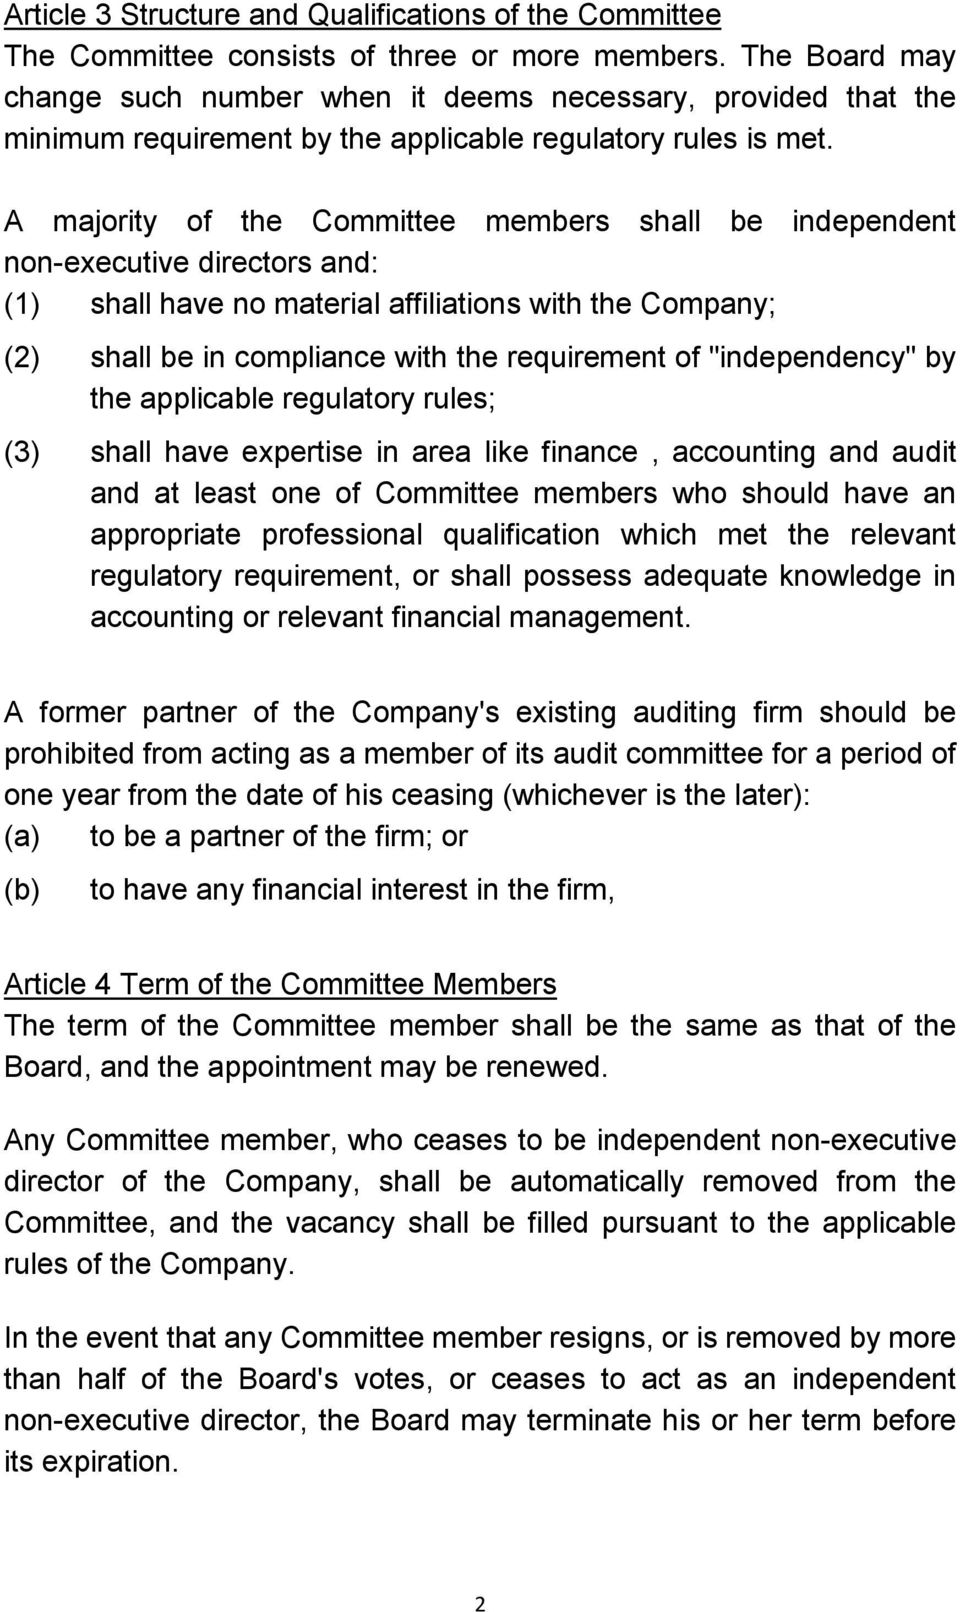 A majority of the Committee members shall be independent non-executive directors and: (1) shall have no material affiliations with the Company; (2) shall be in compliance with the requirement of